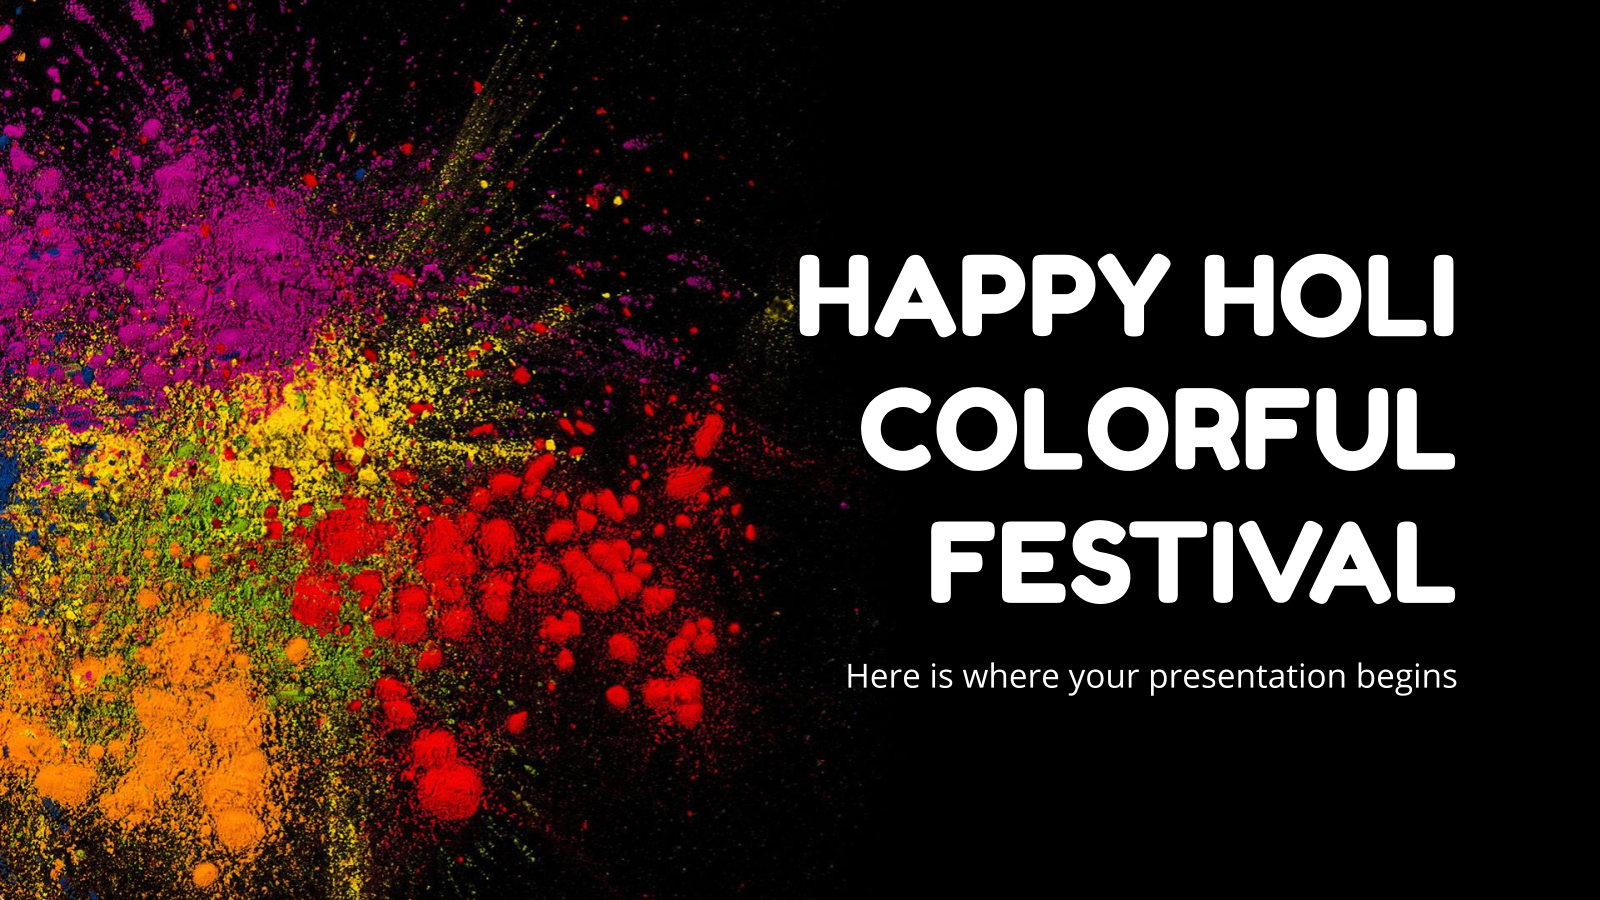 Happy Holi Colorful Festival presentation template